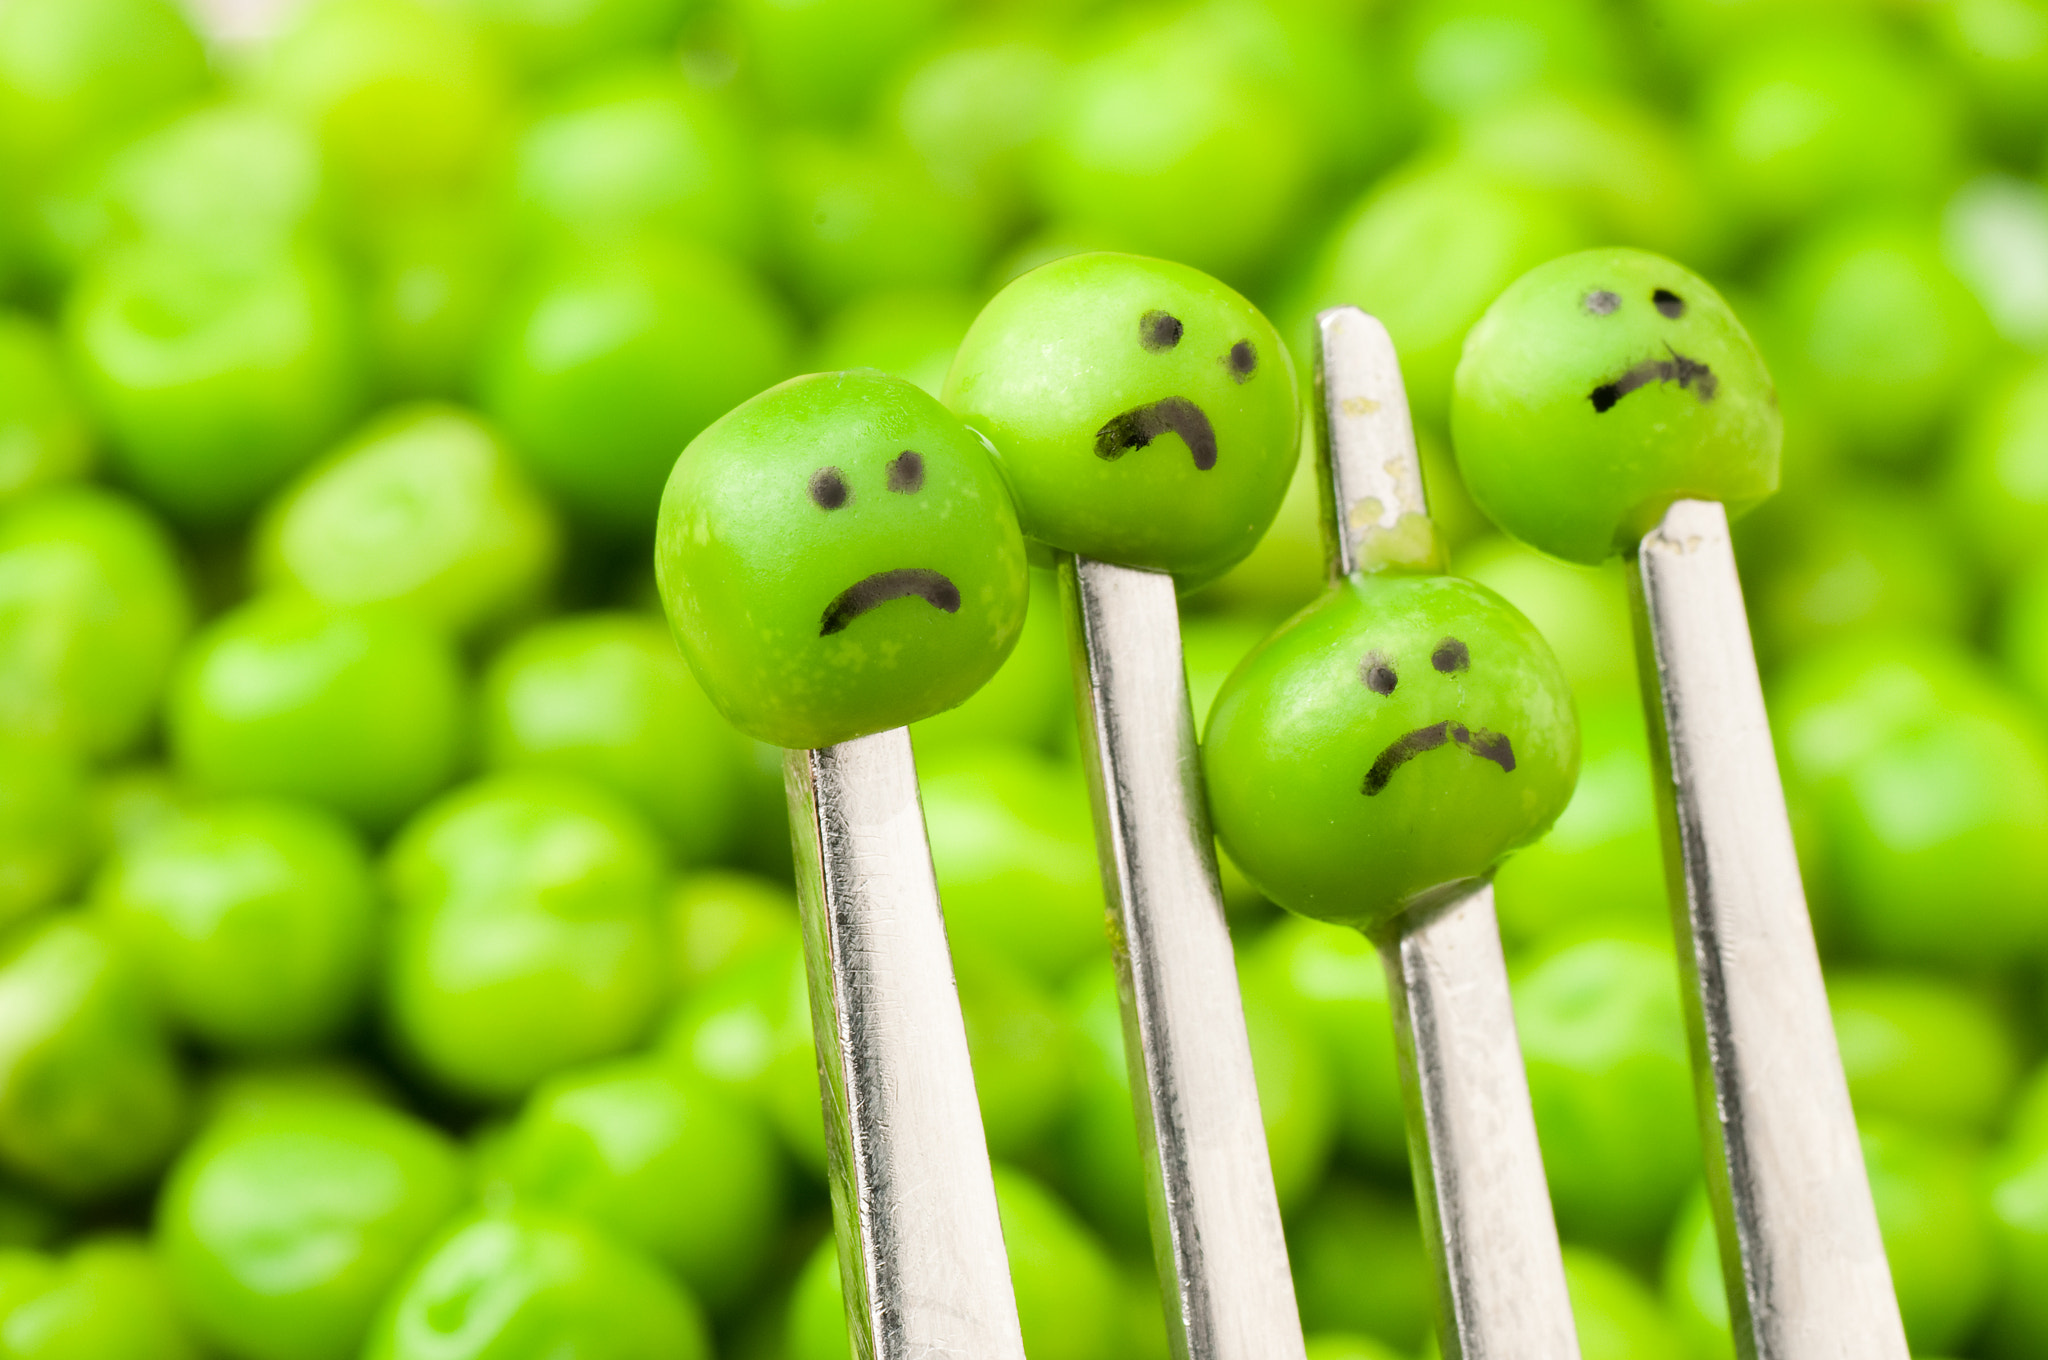 Photograph Sad looking peas on fork by Wijnand Loven on 500px